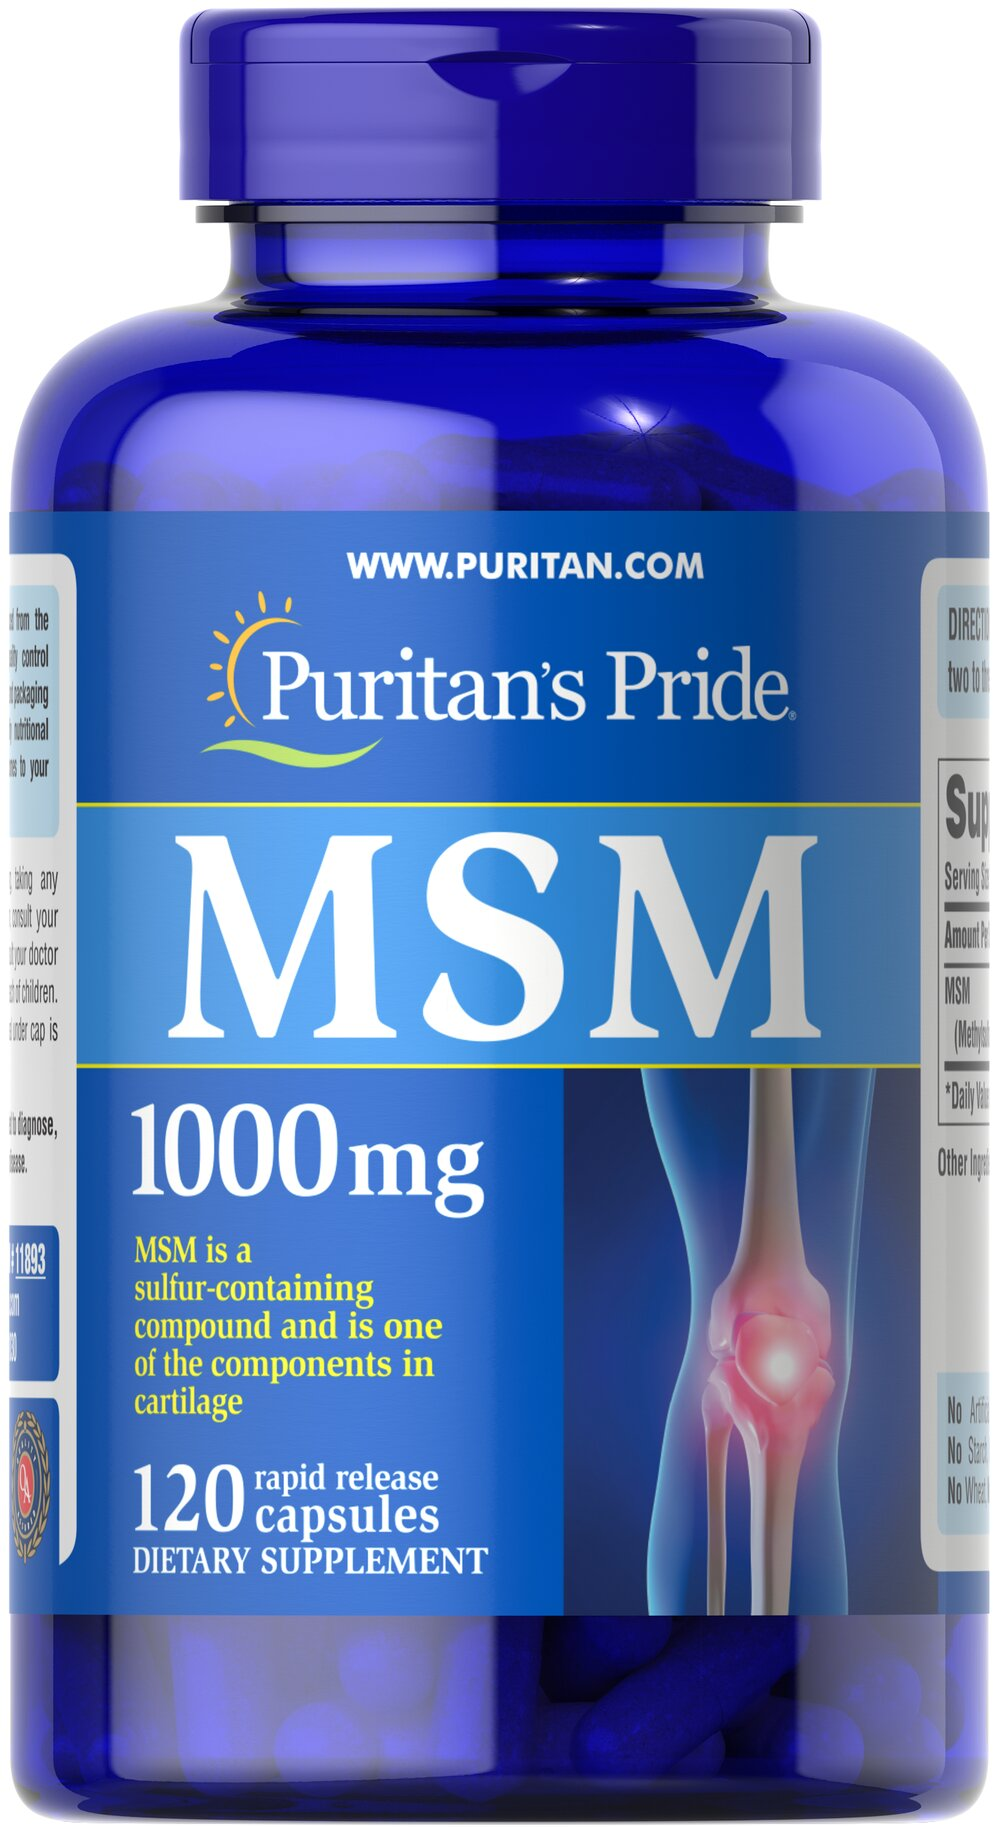 MSM 1000 mg <p><strong>Methylsulfonylmethane (MSM)</strong> is a natural source of sulfur, one of the major building blocks of glycosaminoglycans.** Glycosaminoglycans are key structural components in cartilage and play an important role in the maintenance of joint cartilage. ** </p> 120 Capsules 1000 mg $15.99